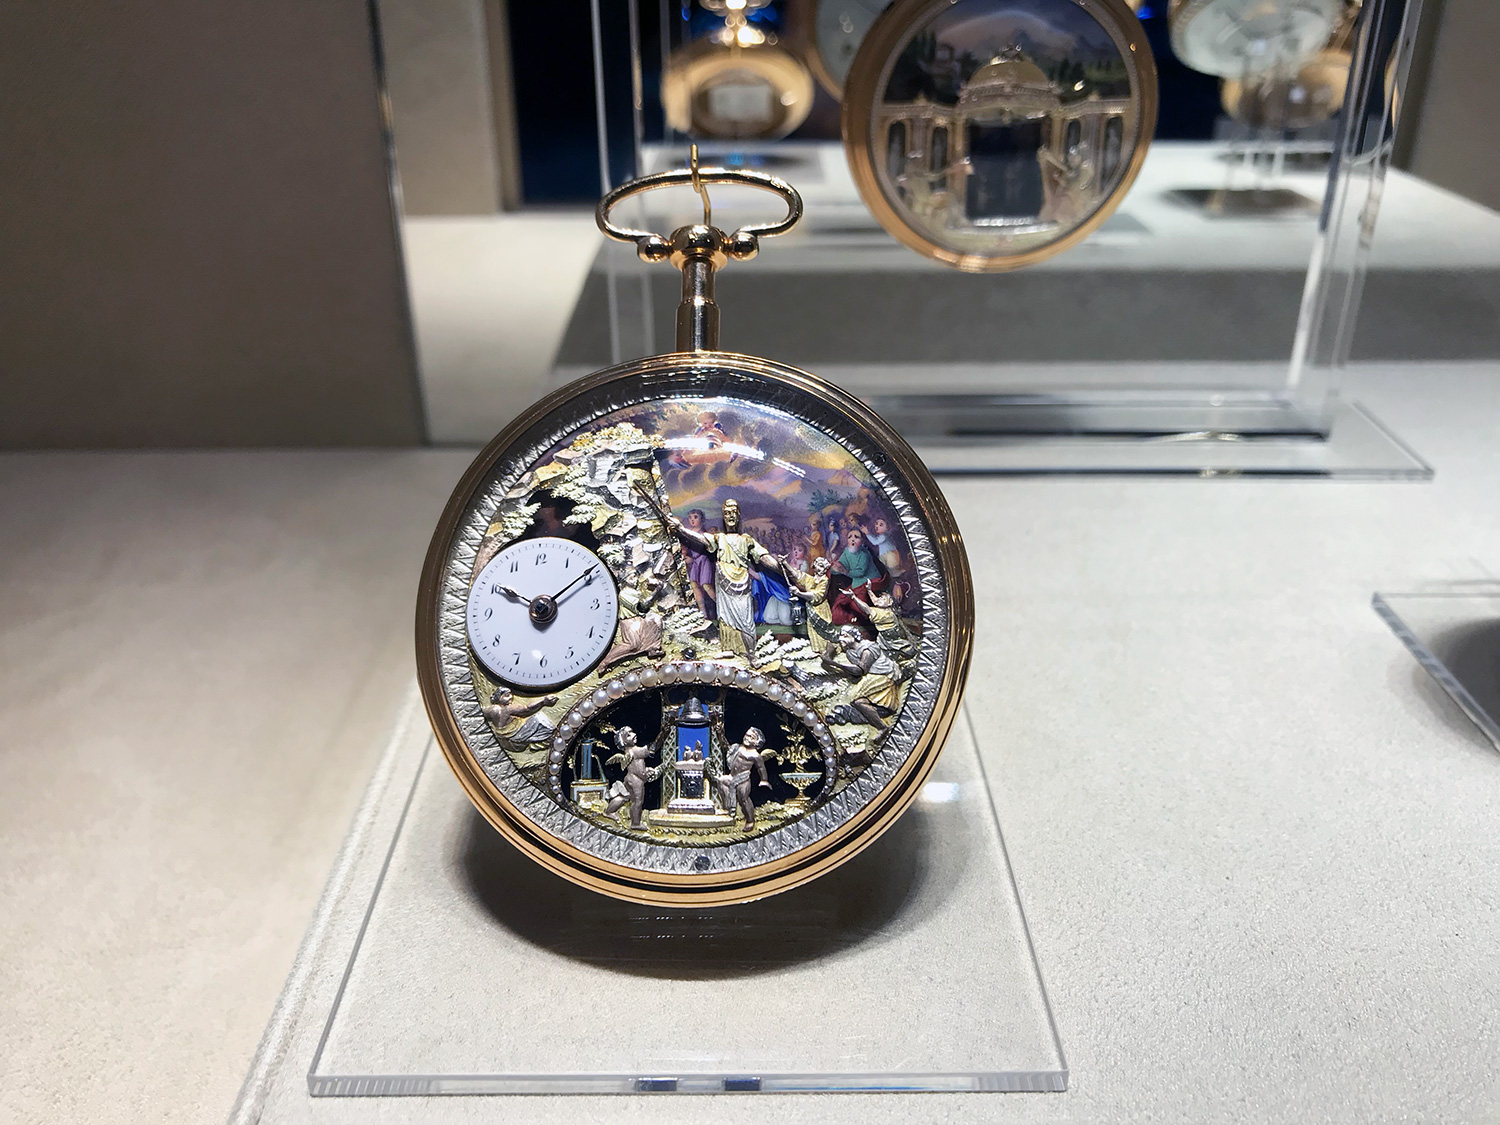 The S-195 Moses watch with automata and repeater